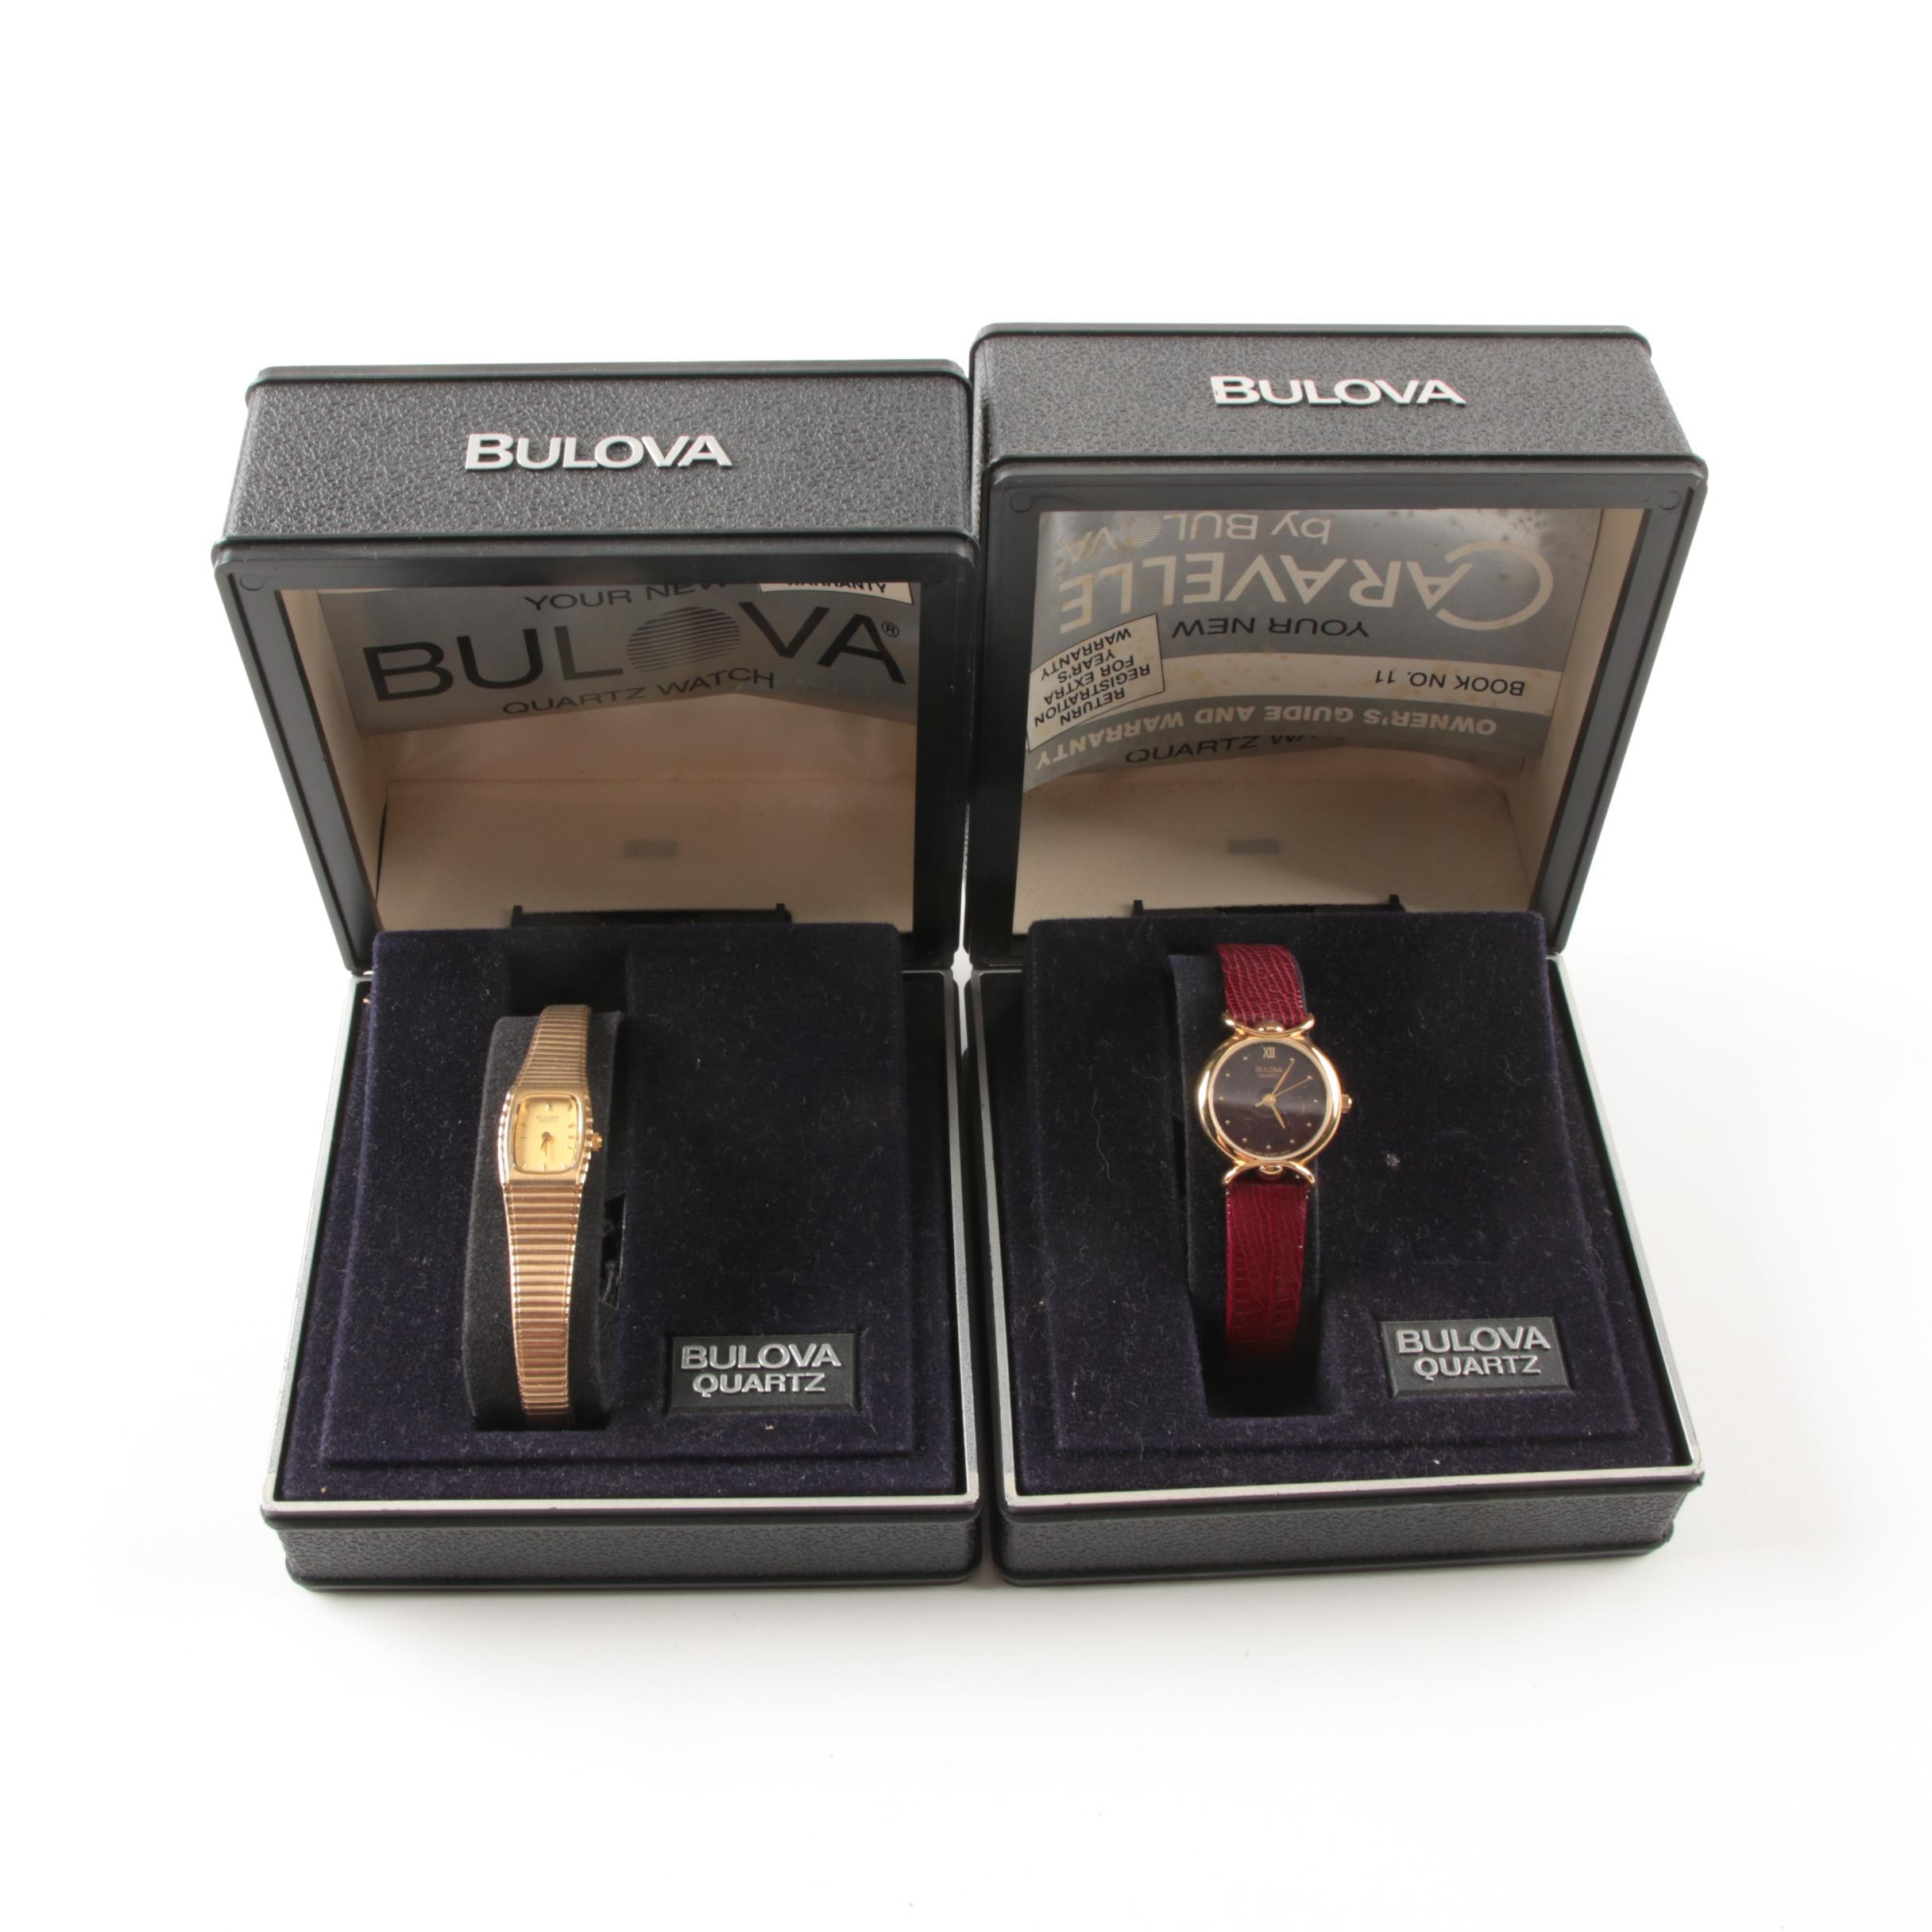 Two Vintage Bulova Watches for Women